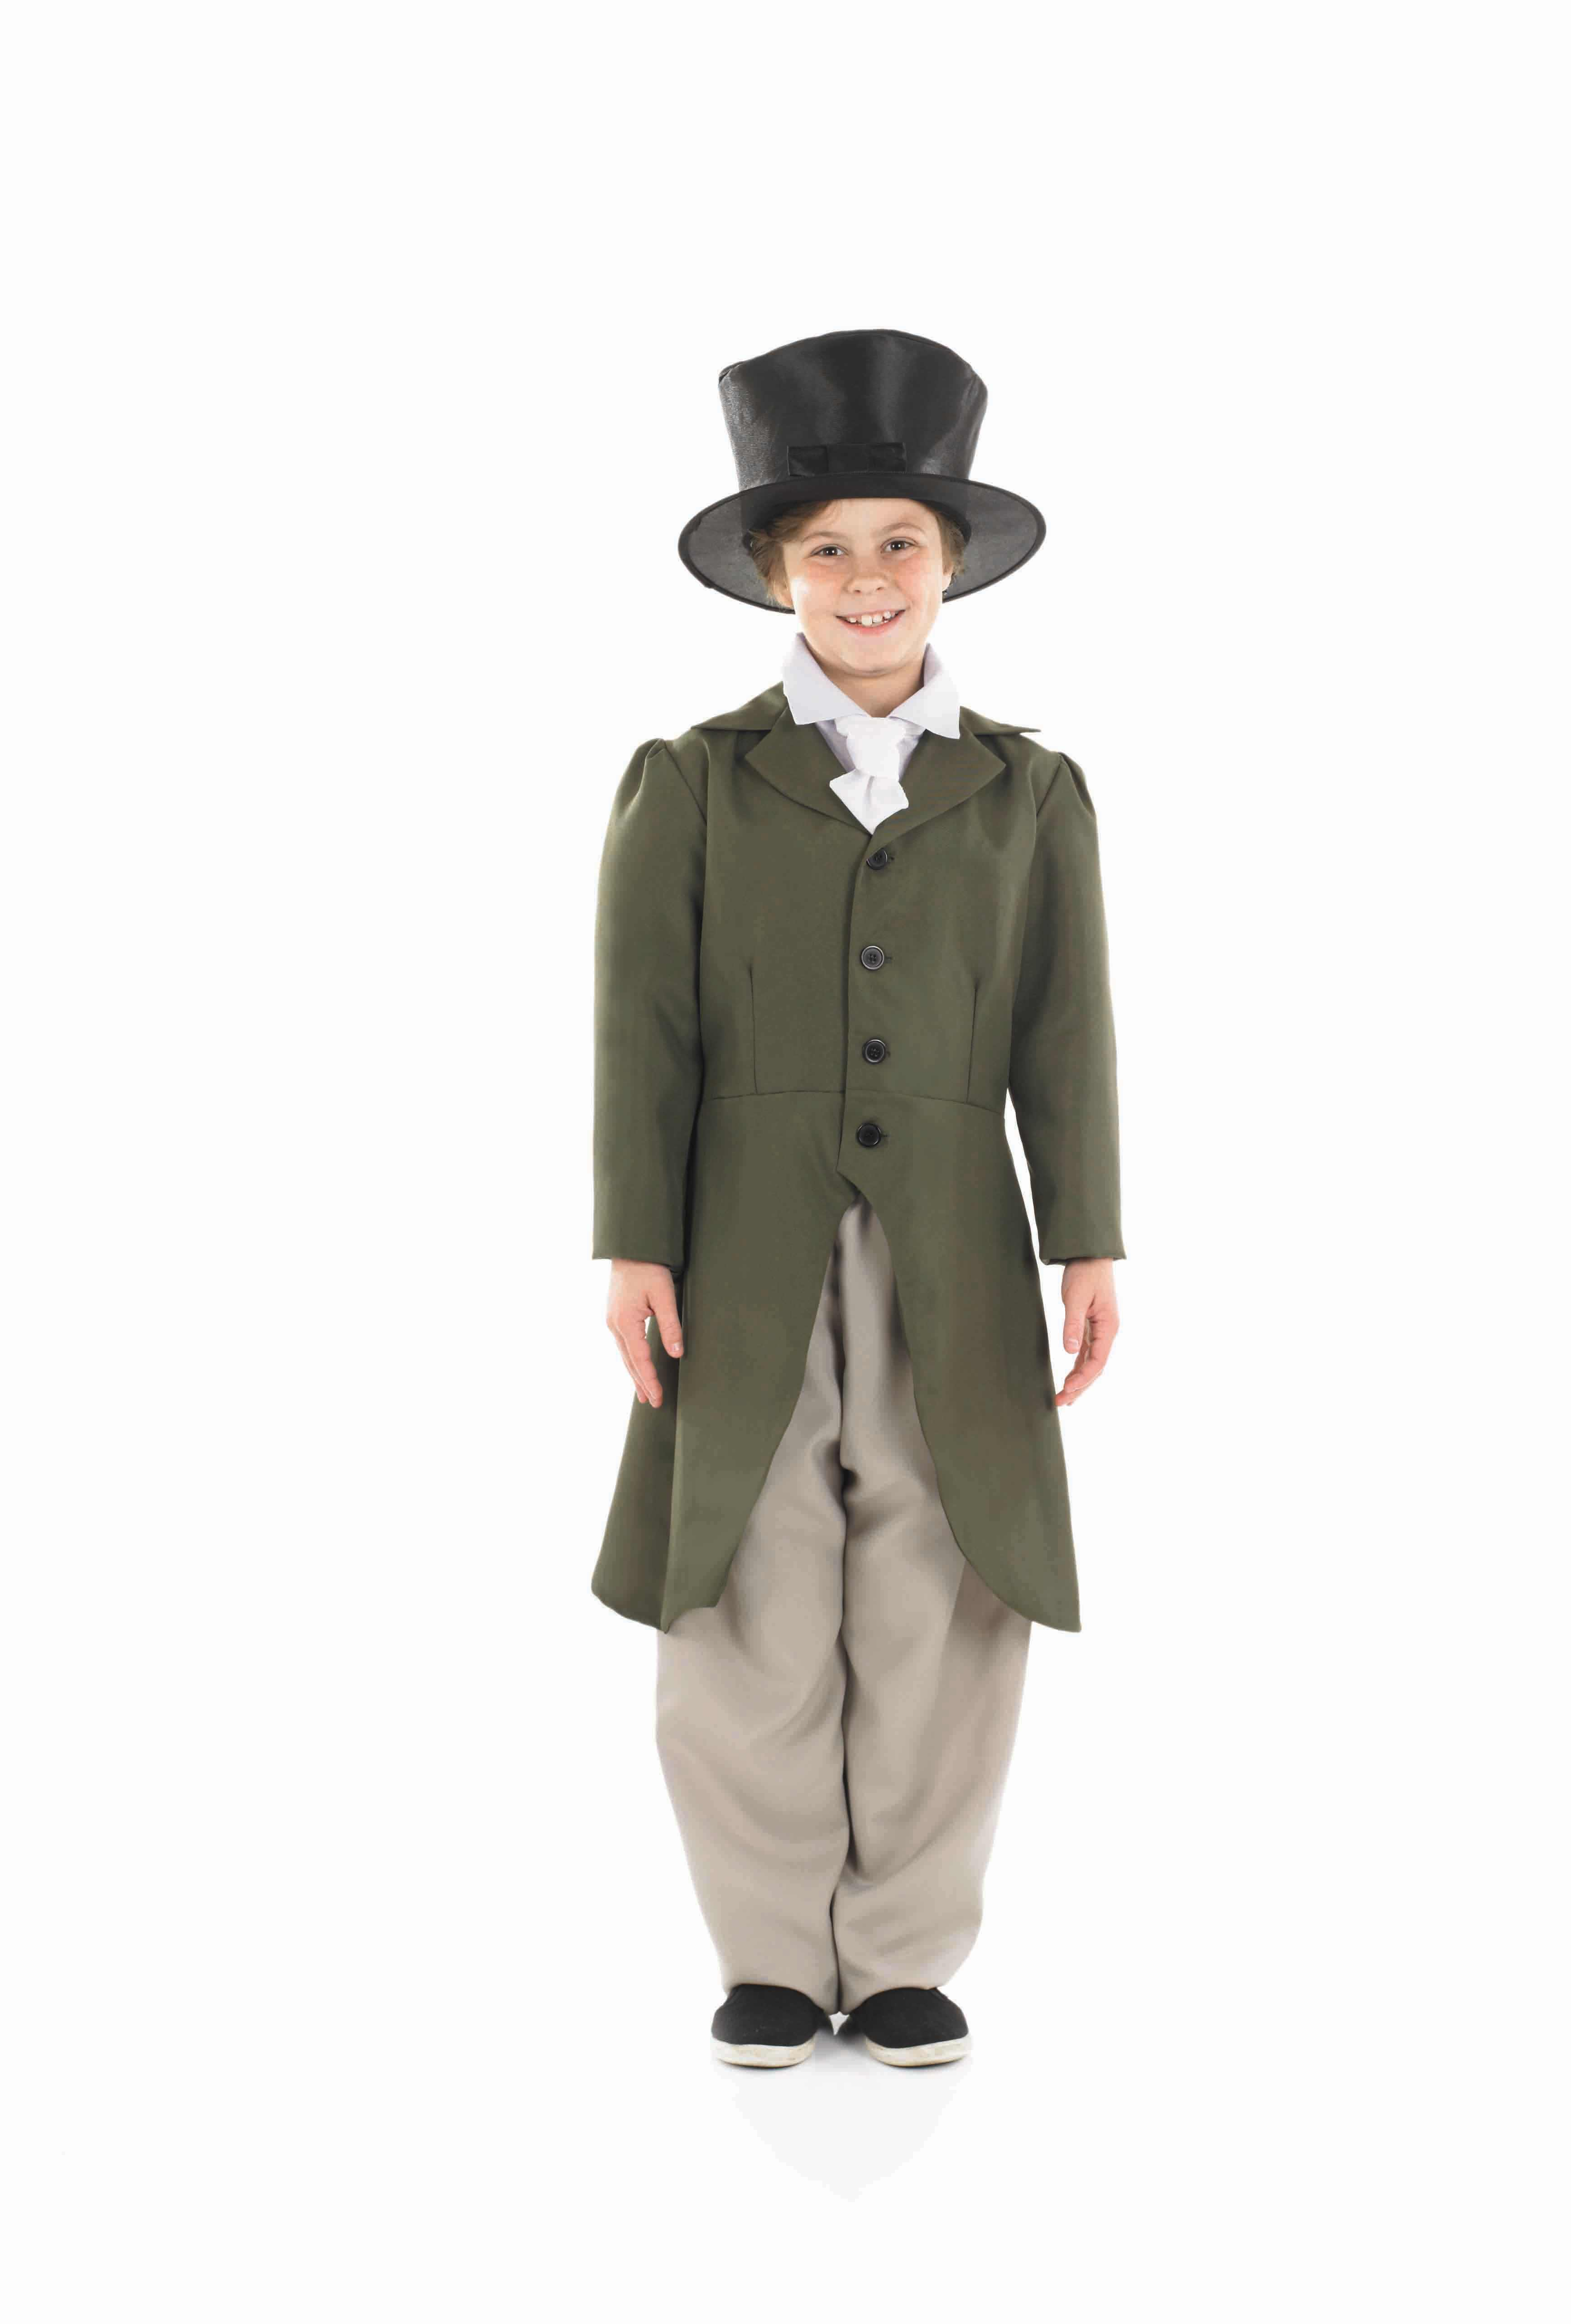 Boys-Regency-Boy-Costume-for-Historic-Book-Day-Fancy-Dress-Up-Outfits